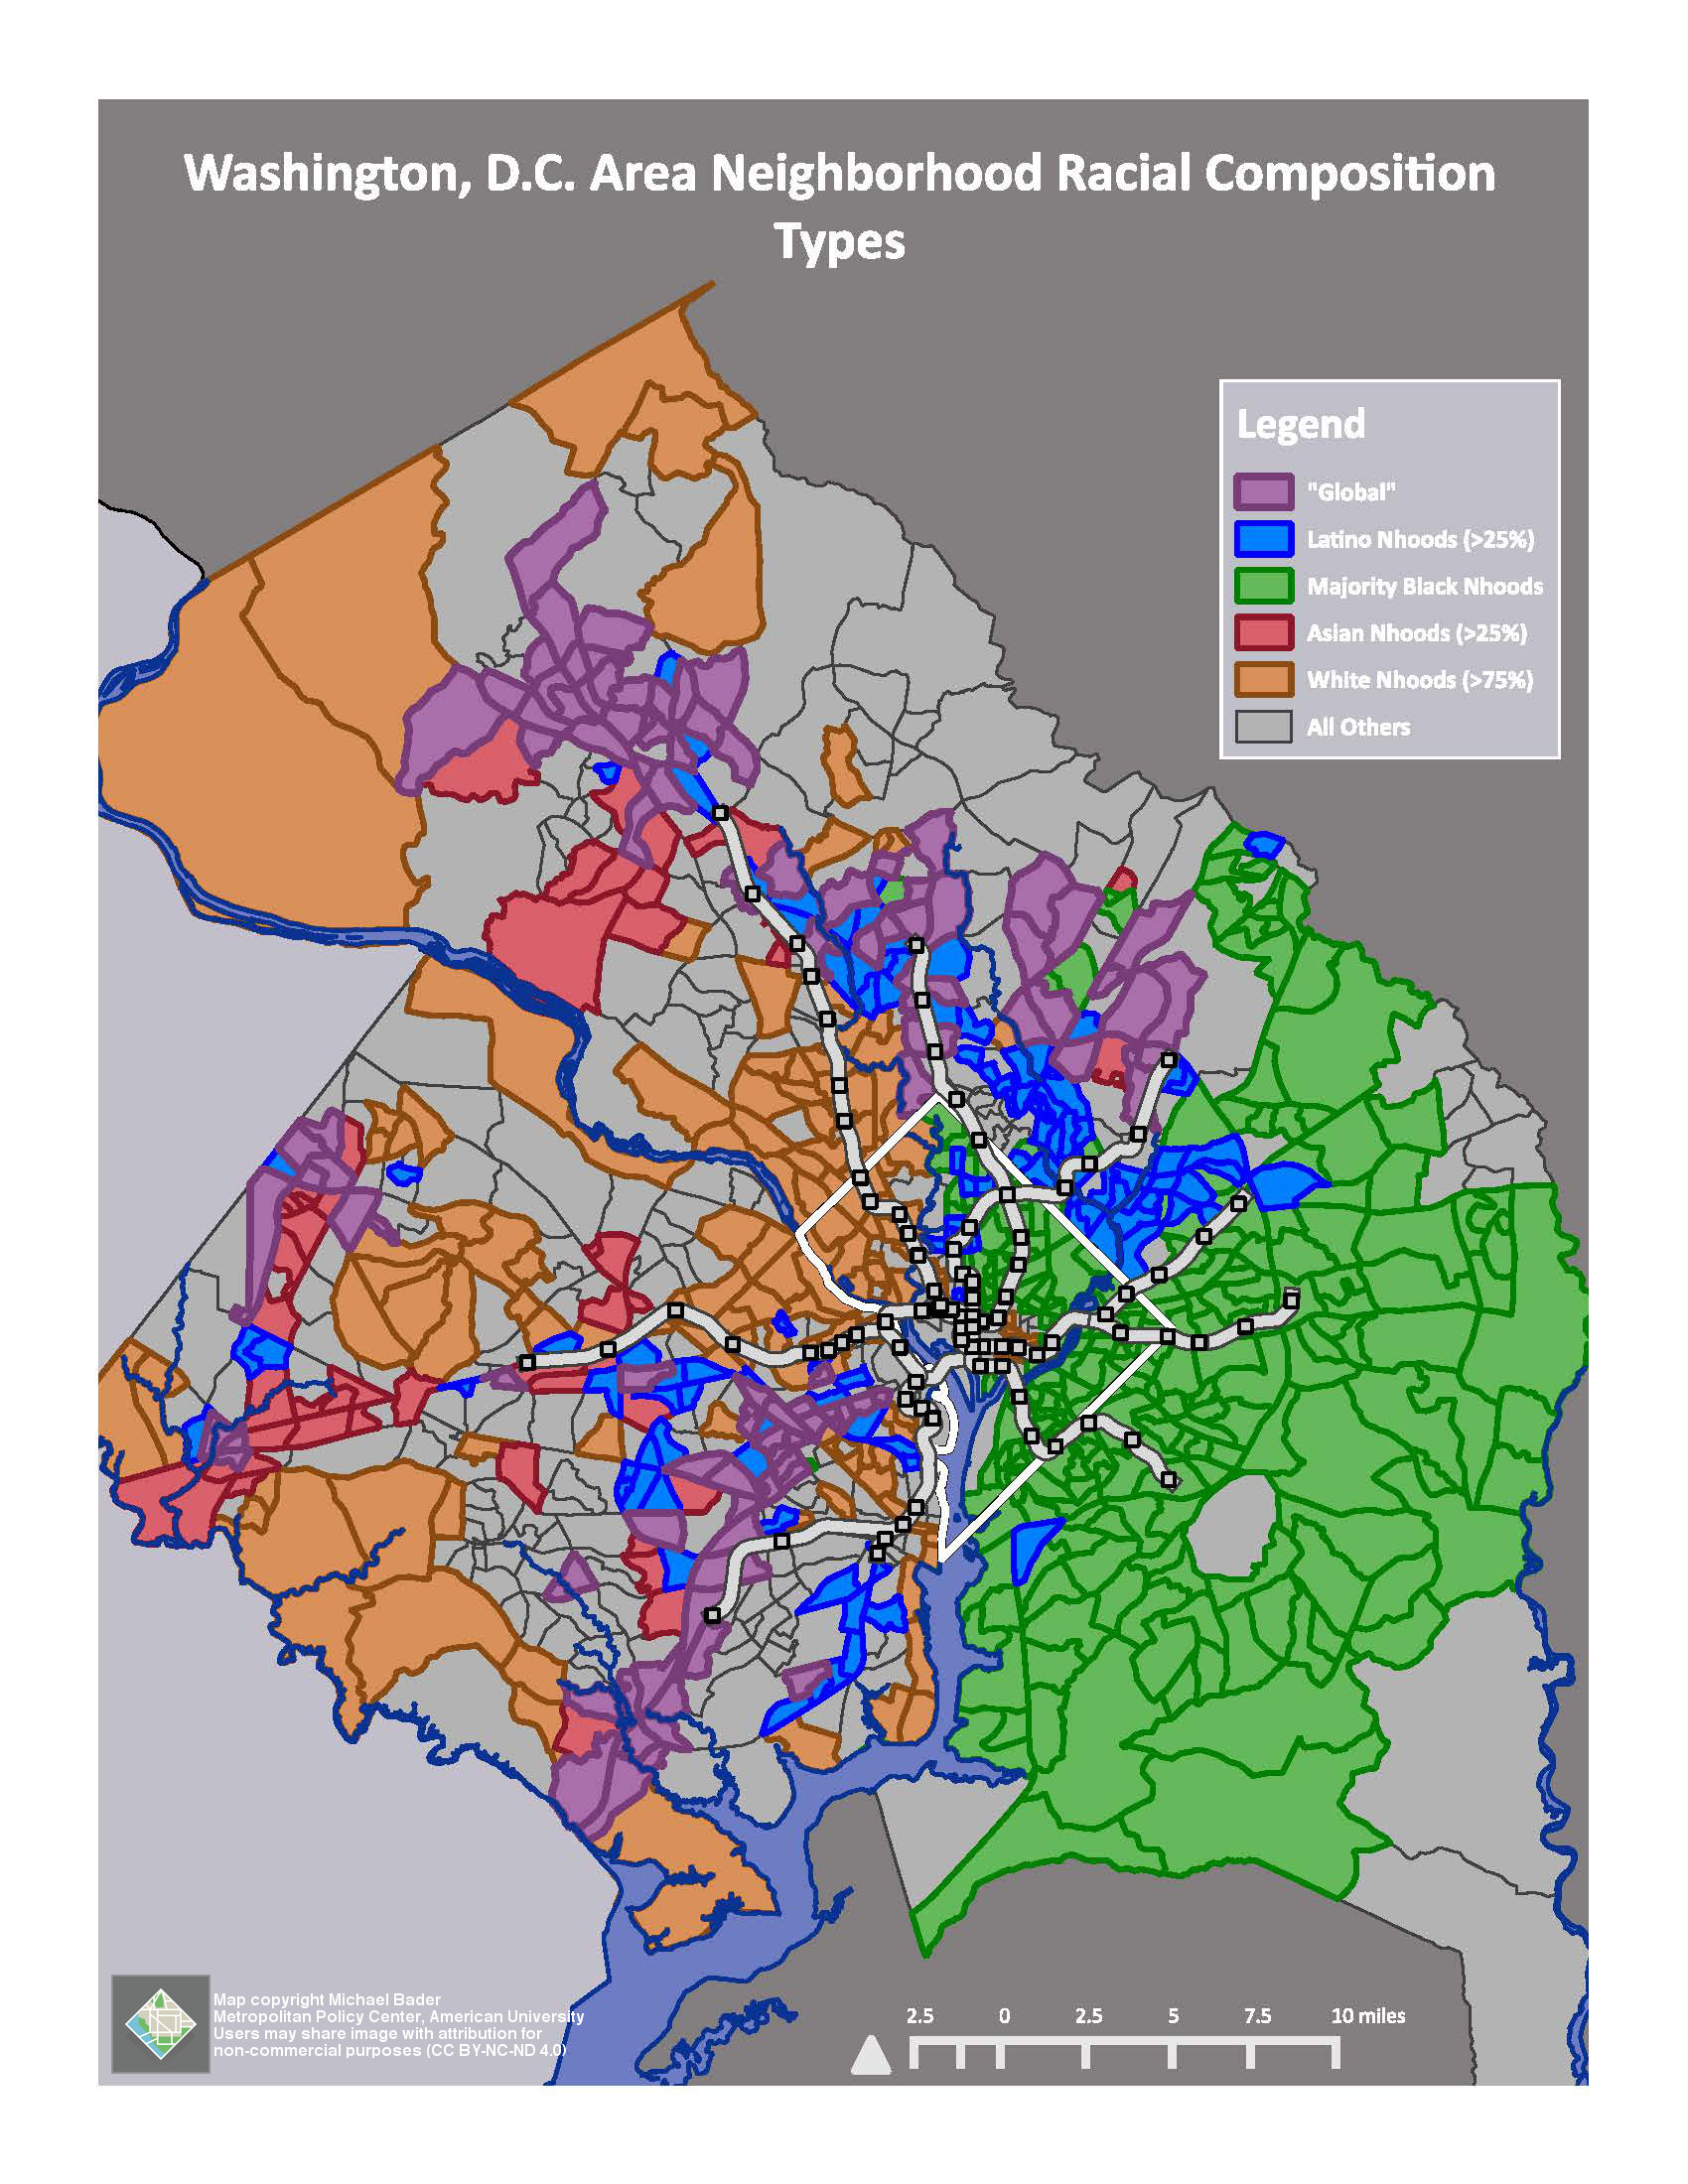 DC Area Survey Metropolitan Policy Center School Of Public - Washington dc area map pdf